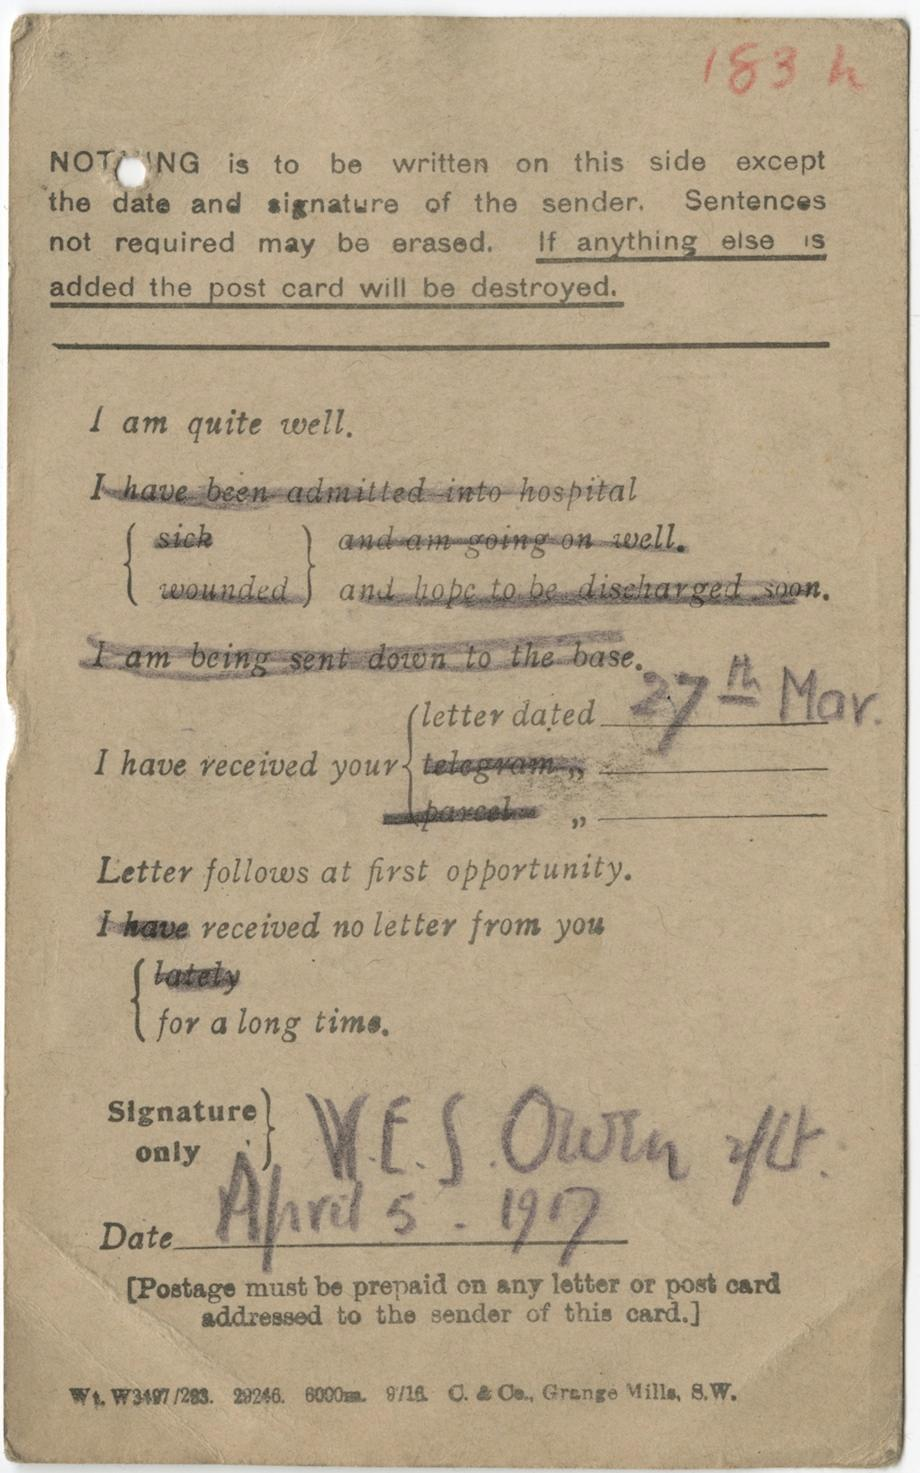 Wilfred Owen How The Poet Used A Form Postcard To Tell His